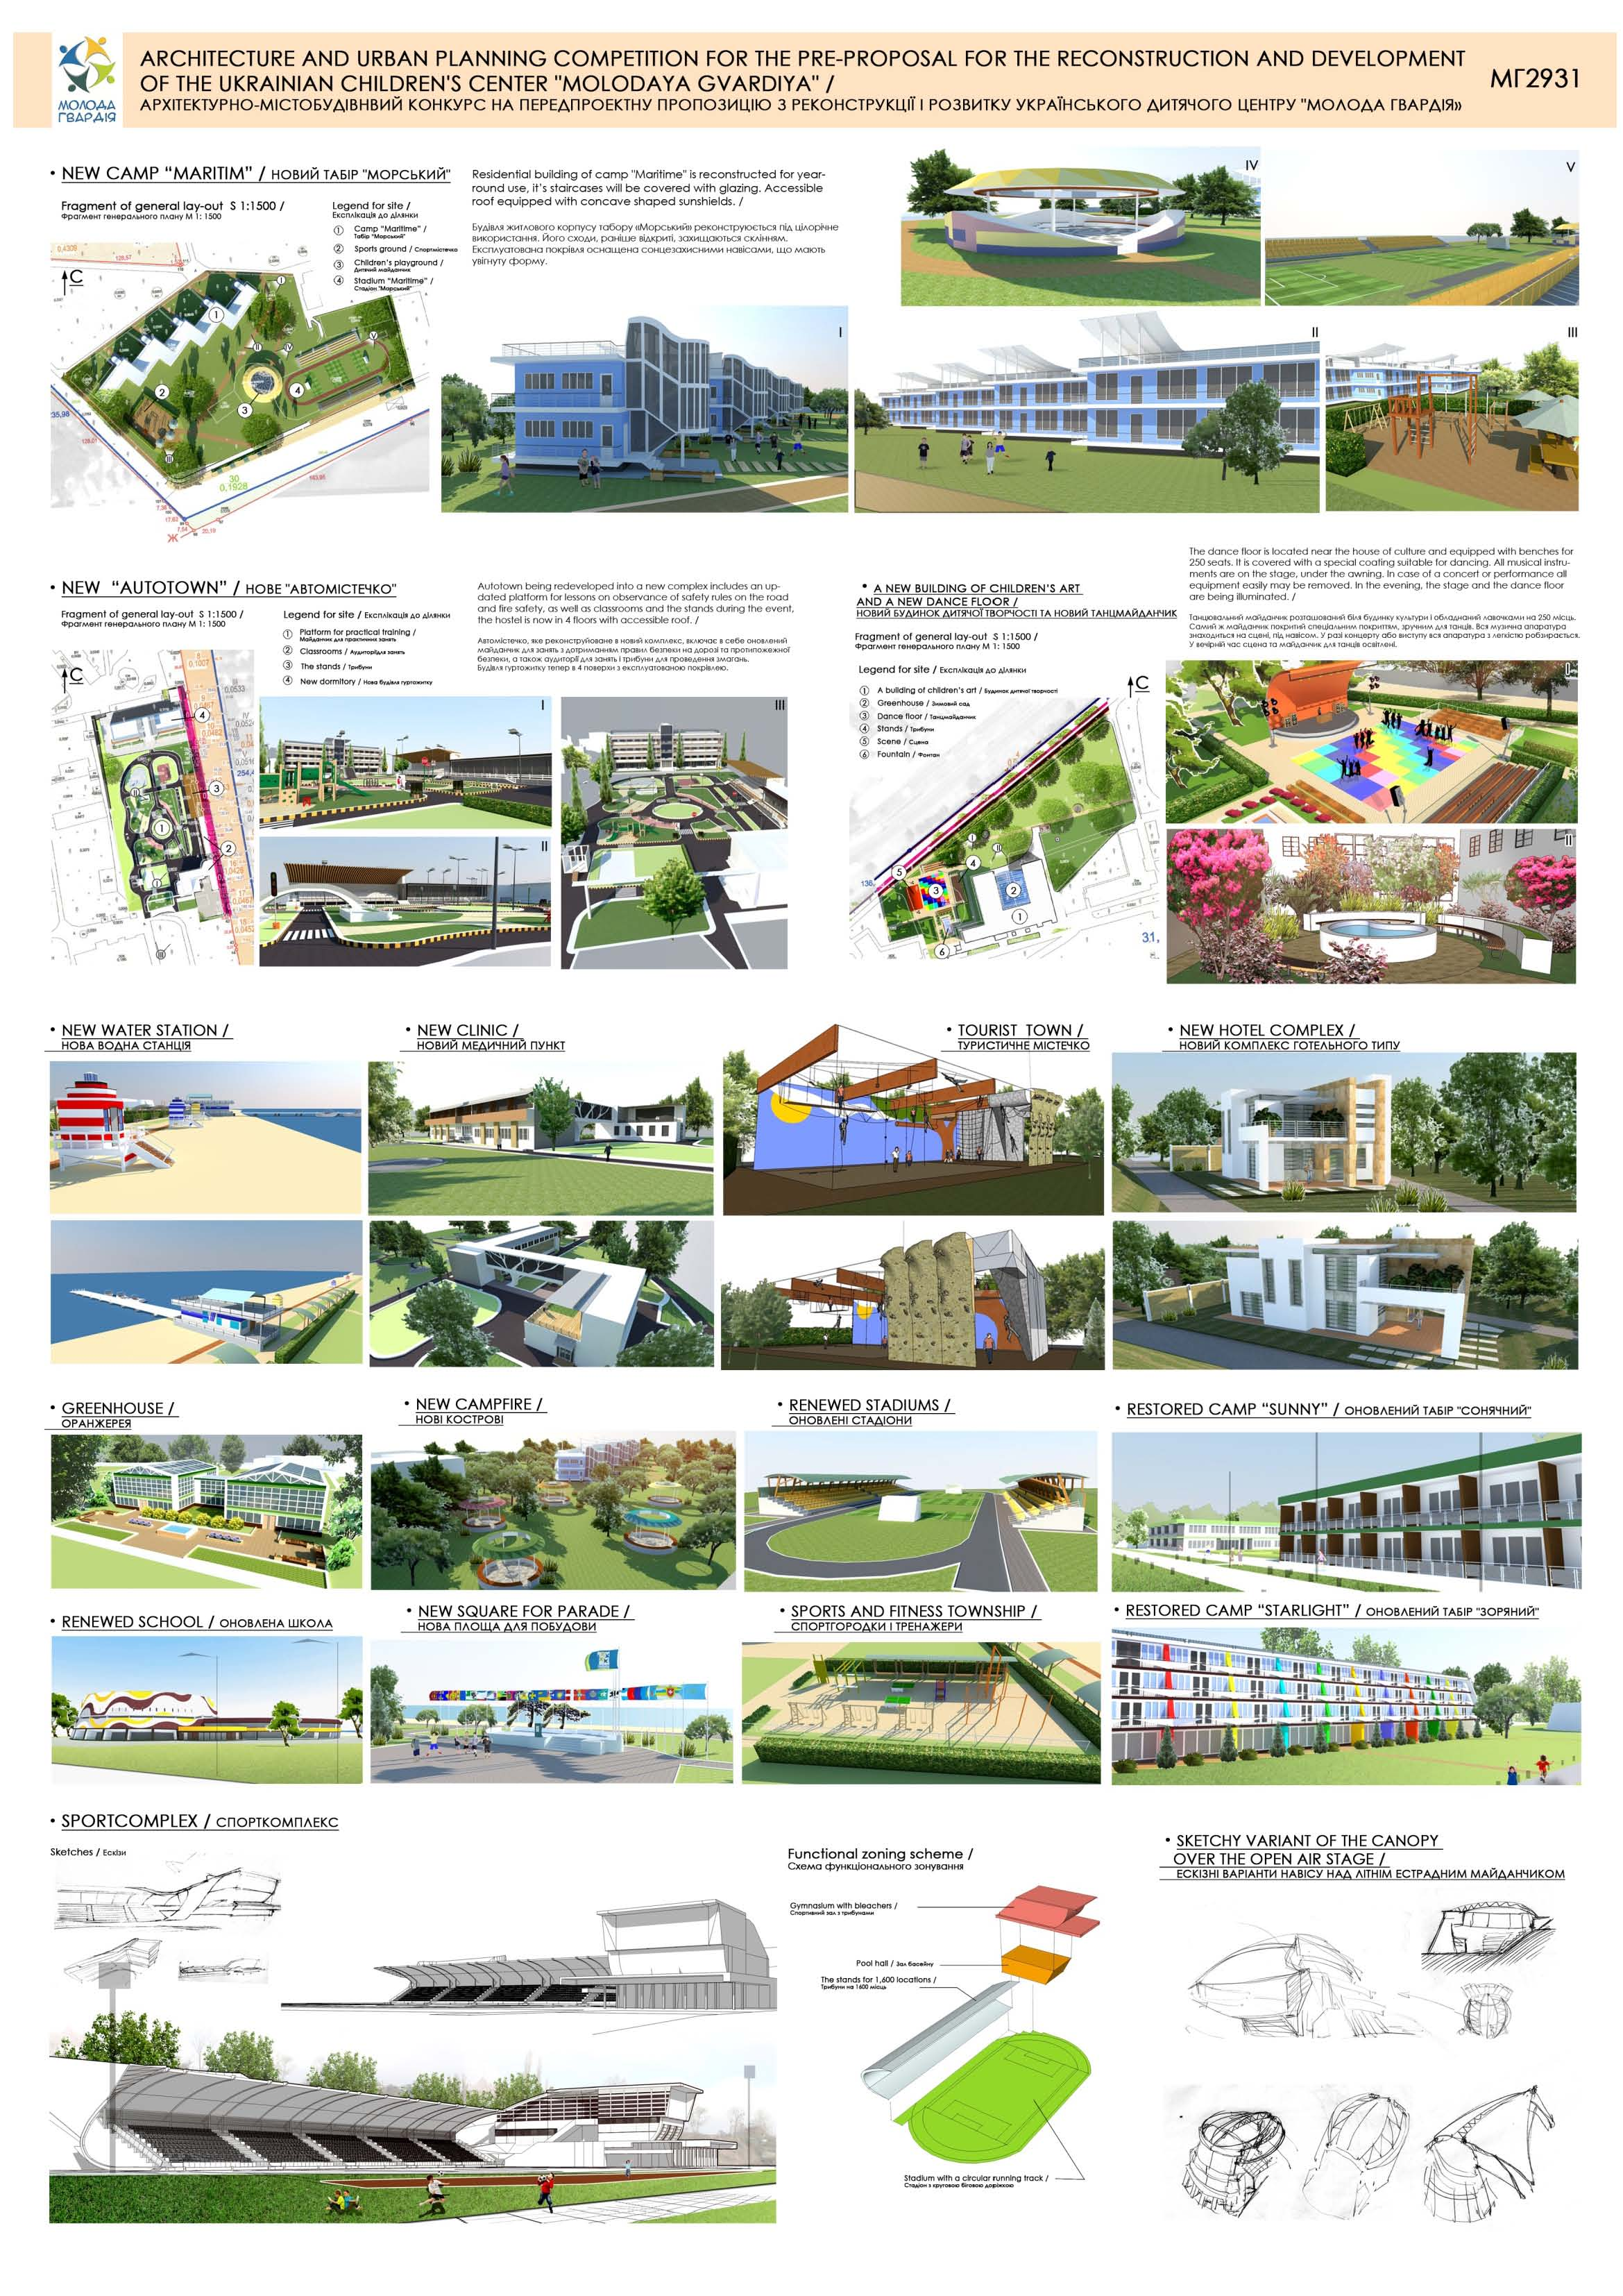 Pre-proposal for Reconstruction and Development of the Ukrainian Children's Center Molodaya Gvardiya